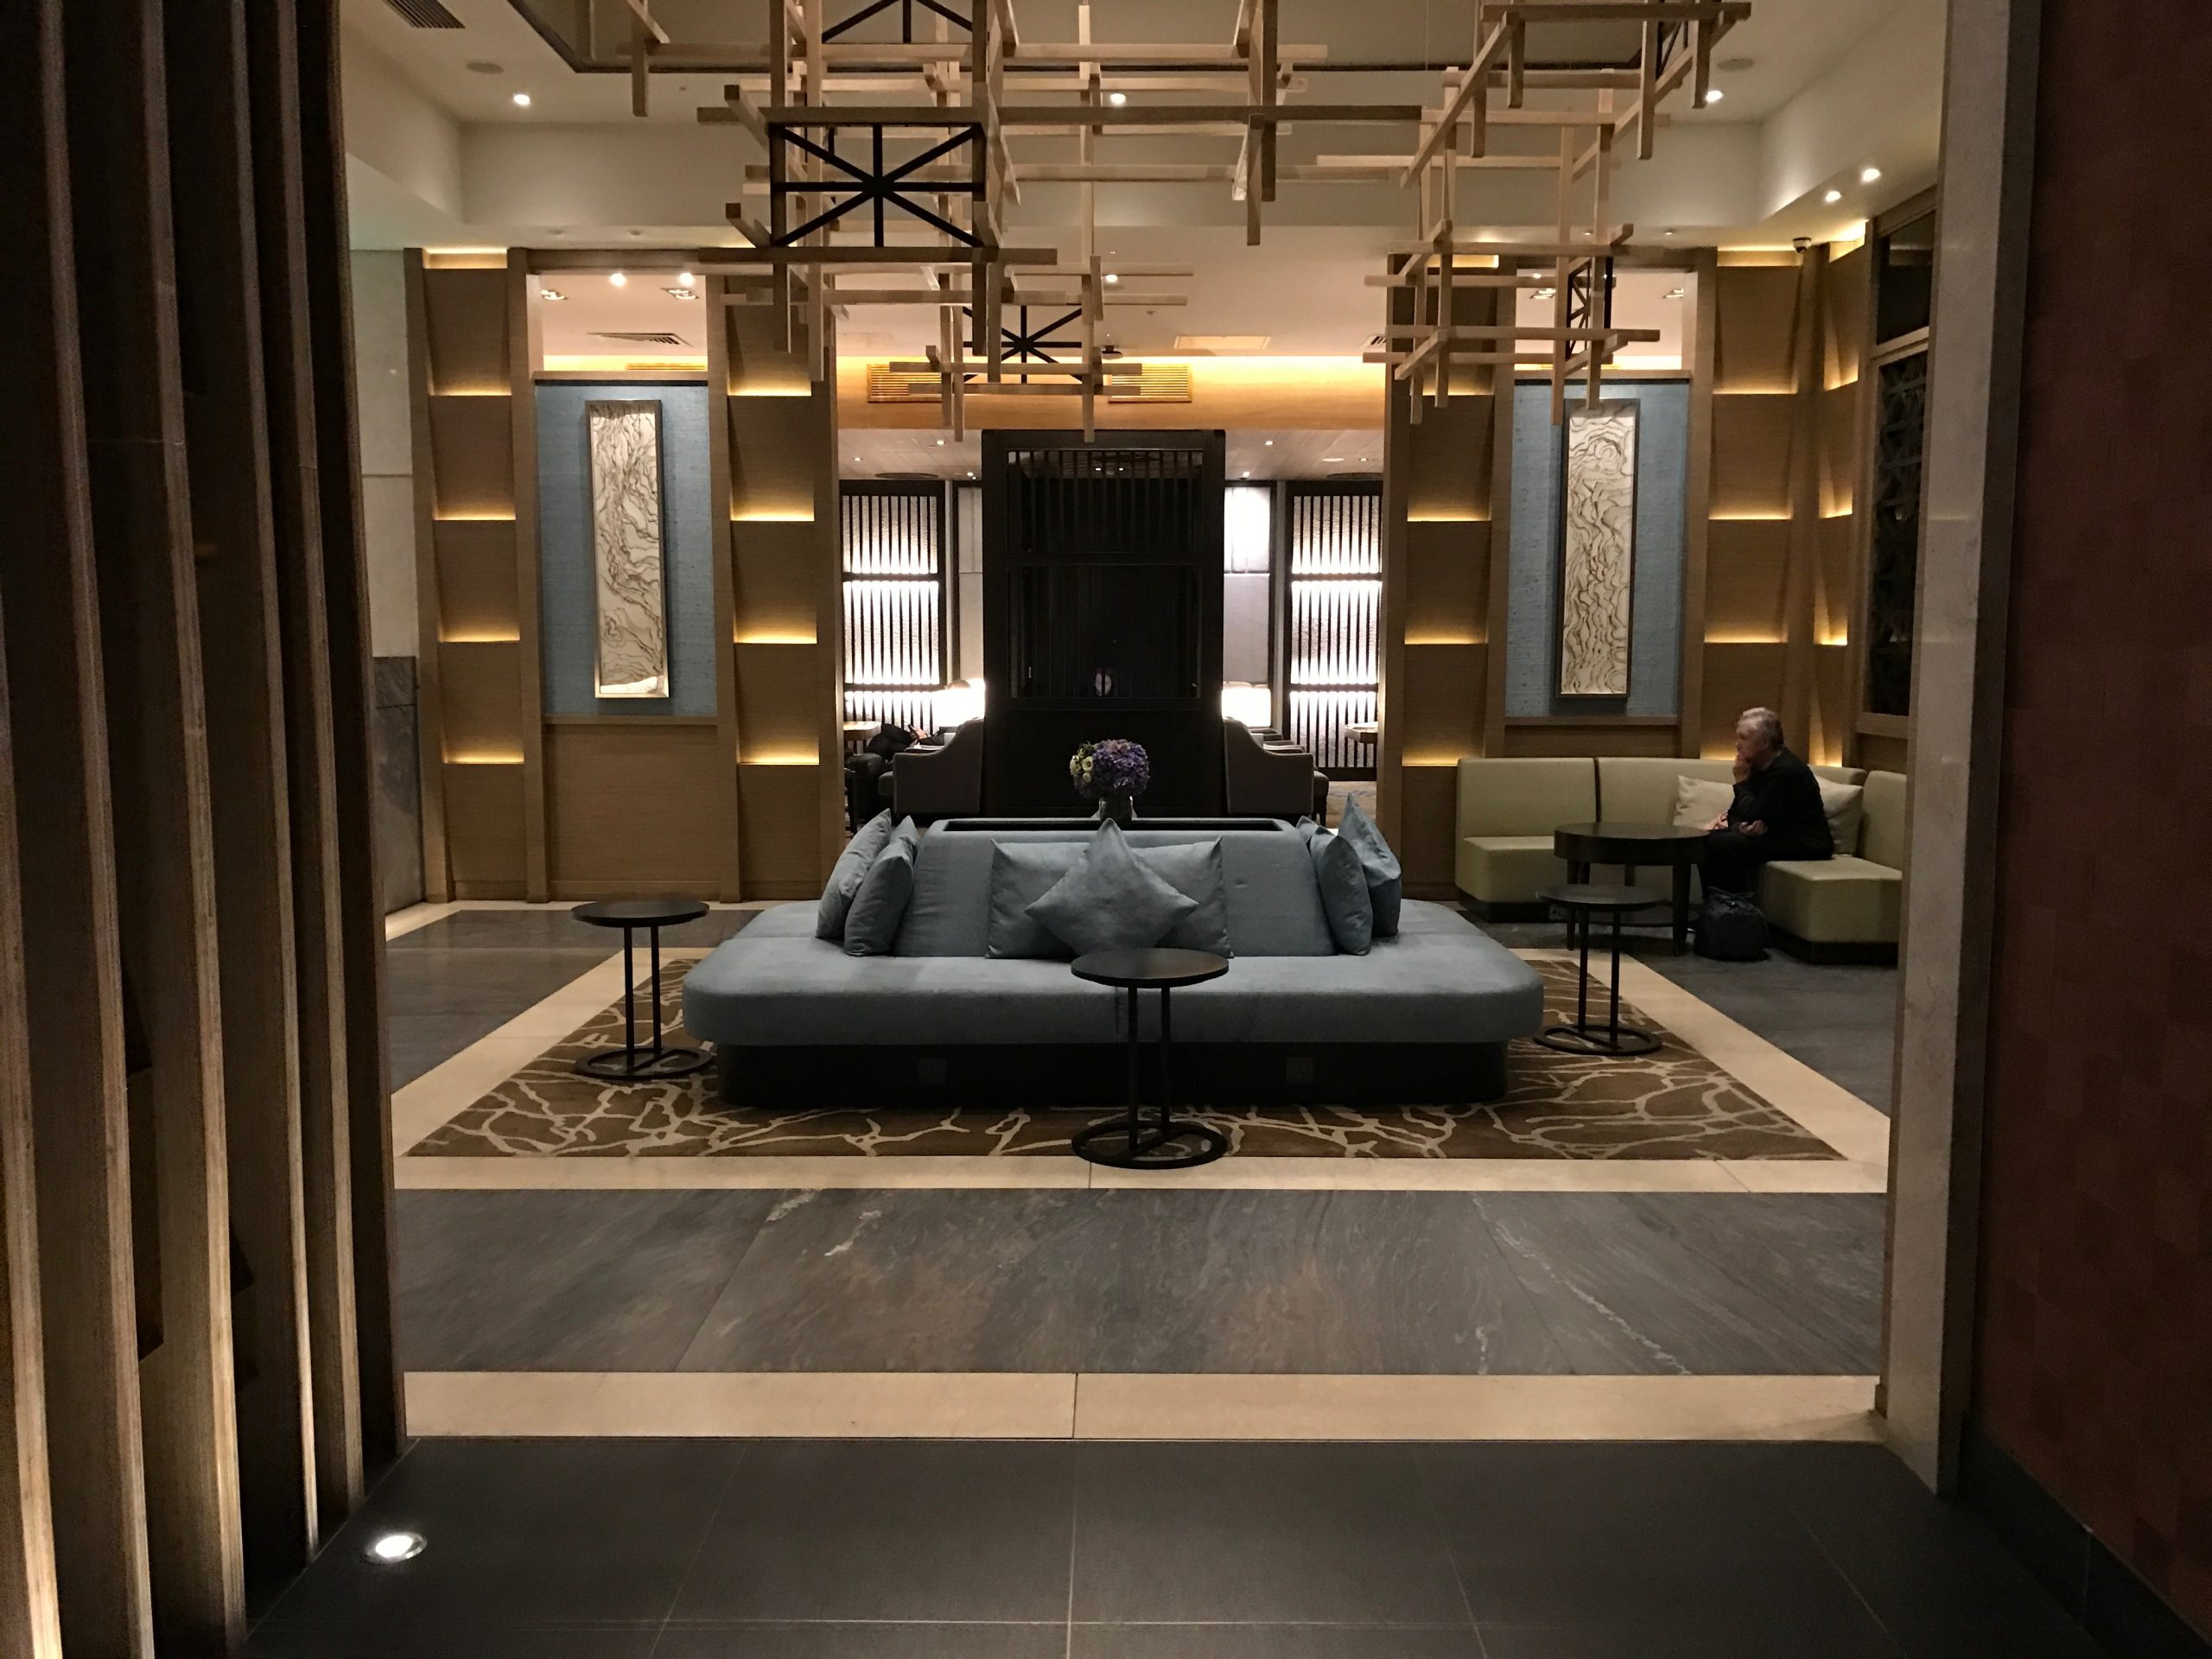 Entry way and atrium of Plaza Premium Lounge at London-Heathrow Airport